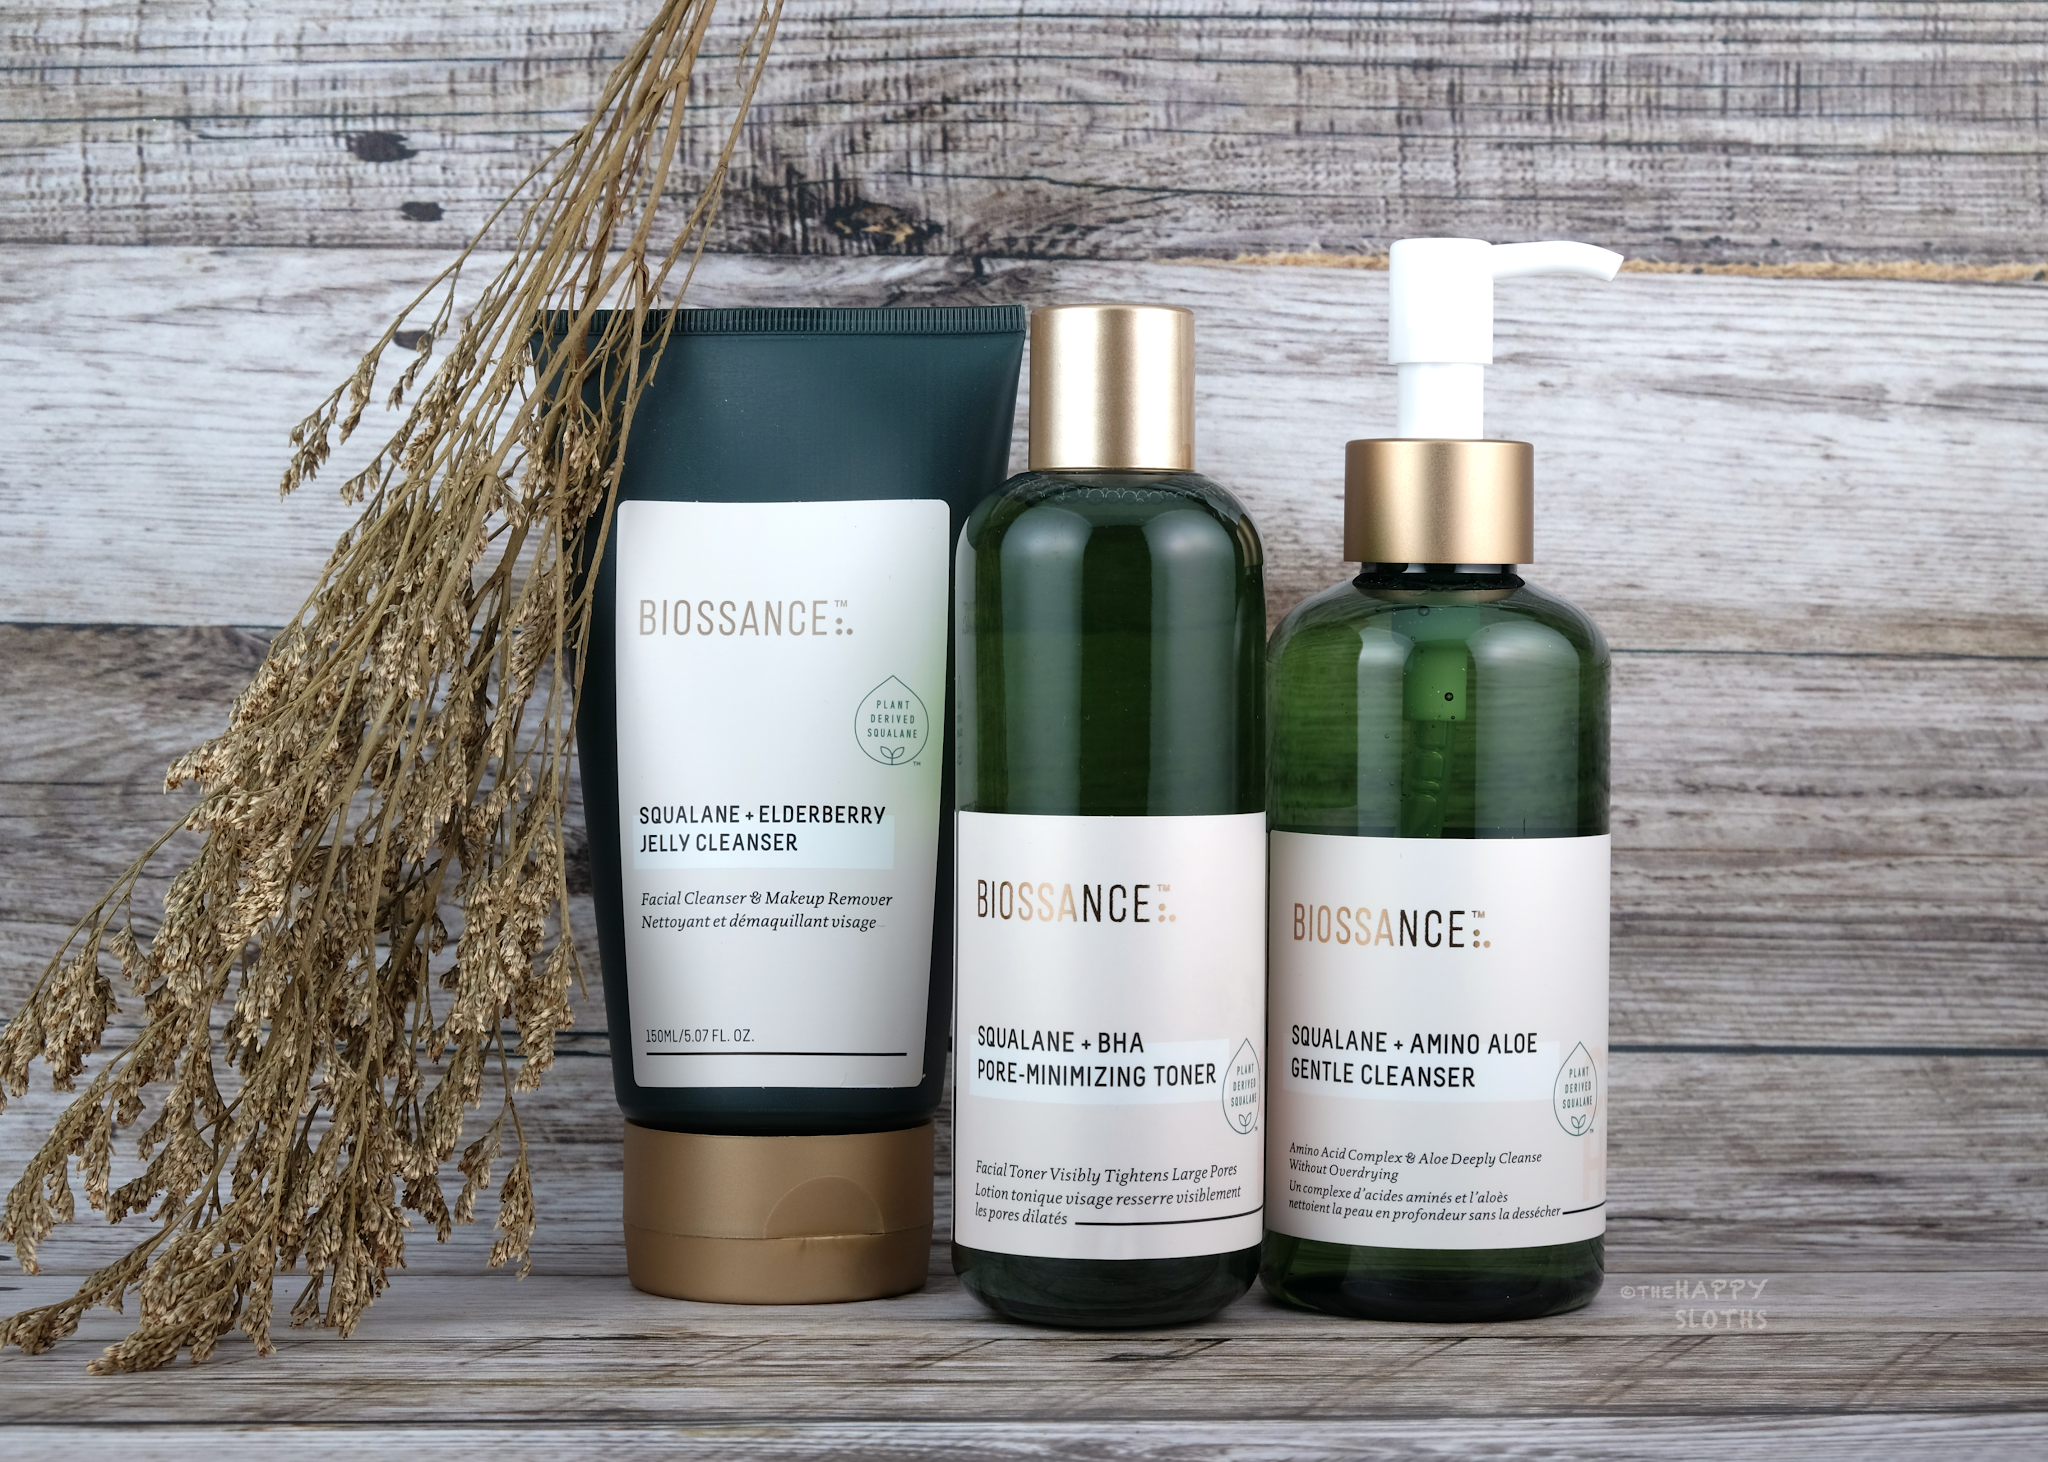 Biossance | Squalane + Amino Aloe Gentle Cleanser, Biossance Squalane + BHA Pore-Minimizing Toner & Squalane + Elderberry Jelly Cleanser: Review